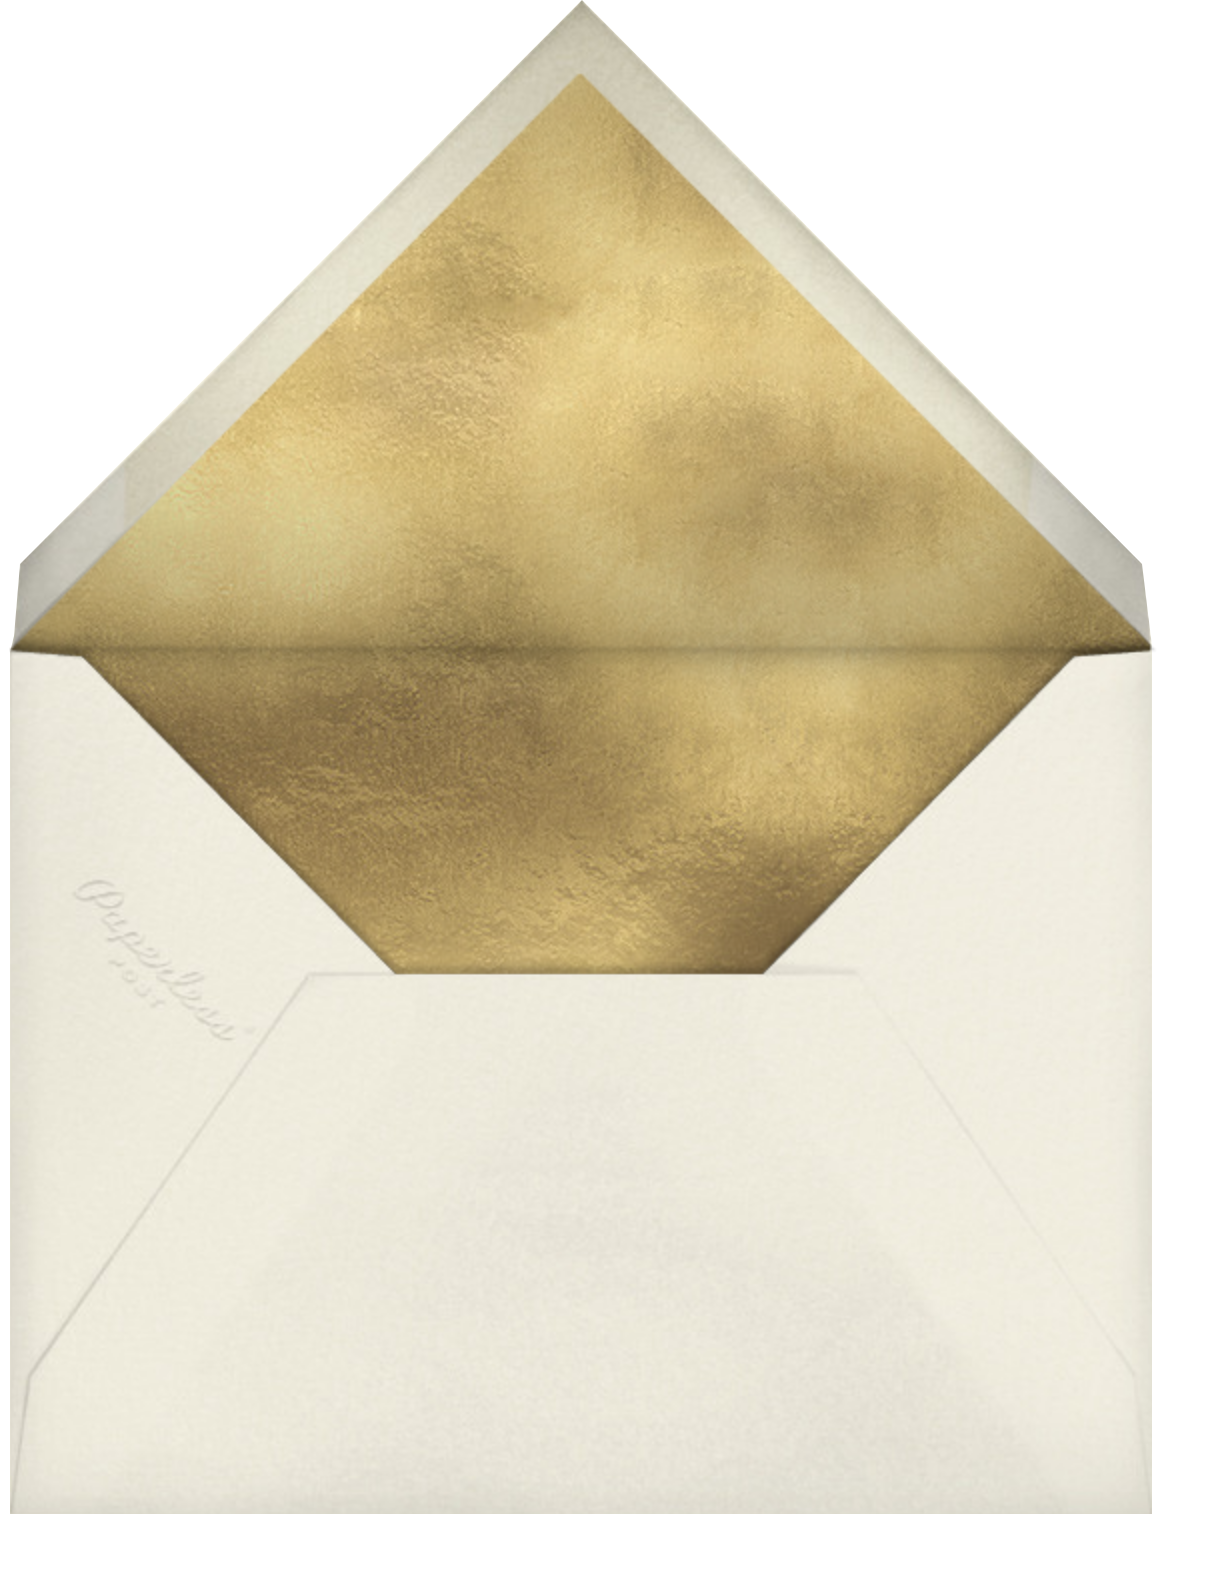 Gold Canopy (Invitation) - Rifle Paper Co. - All - envelope back